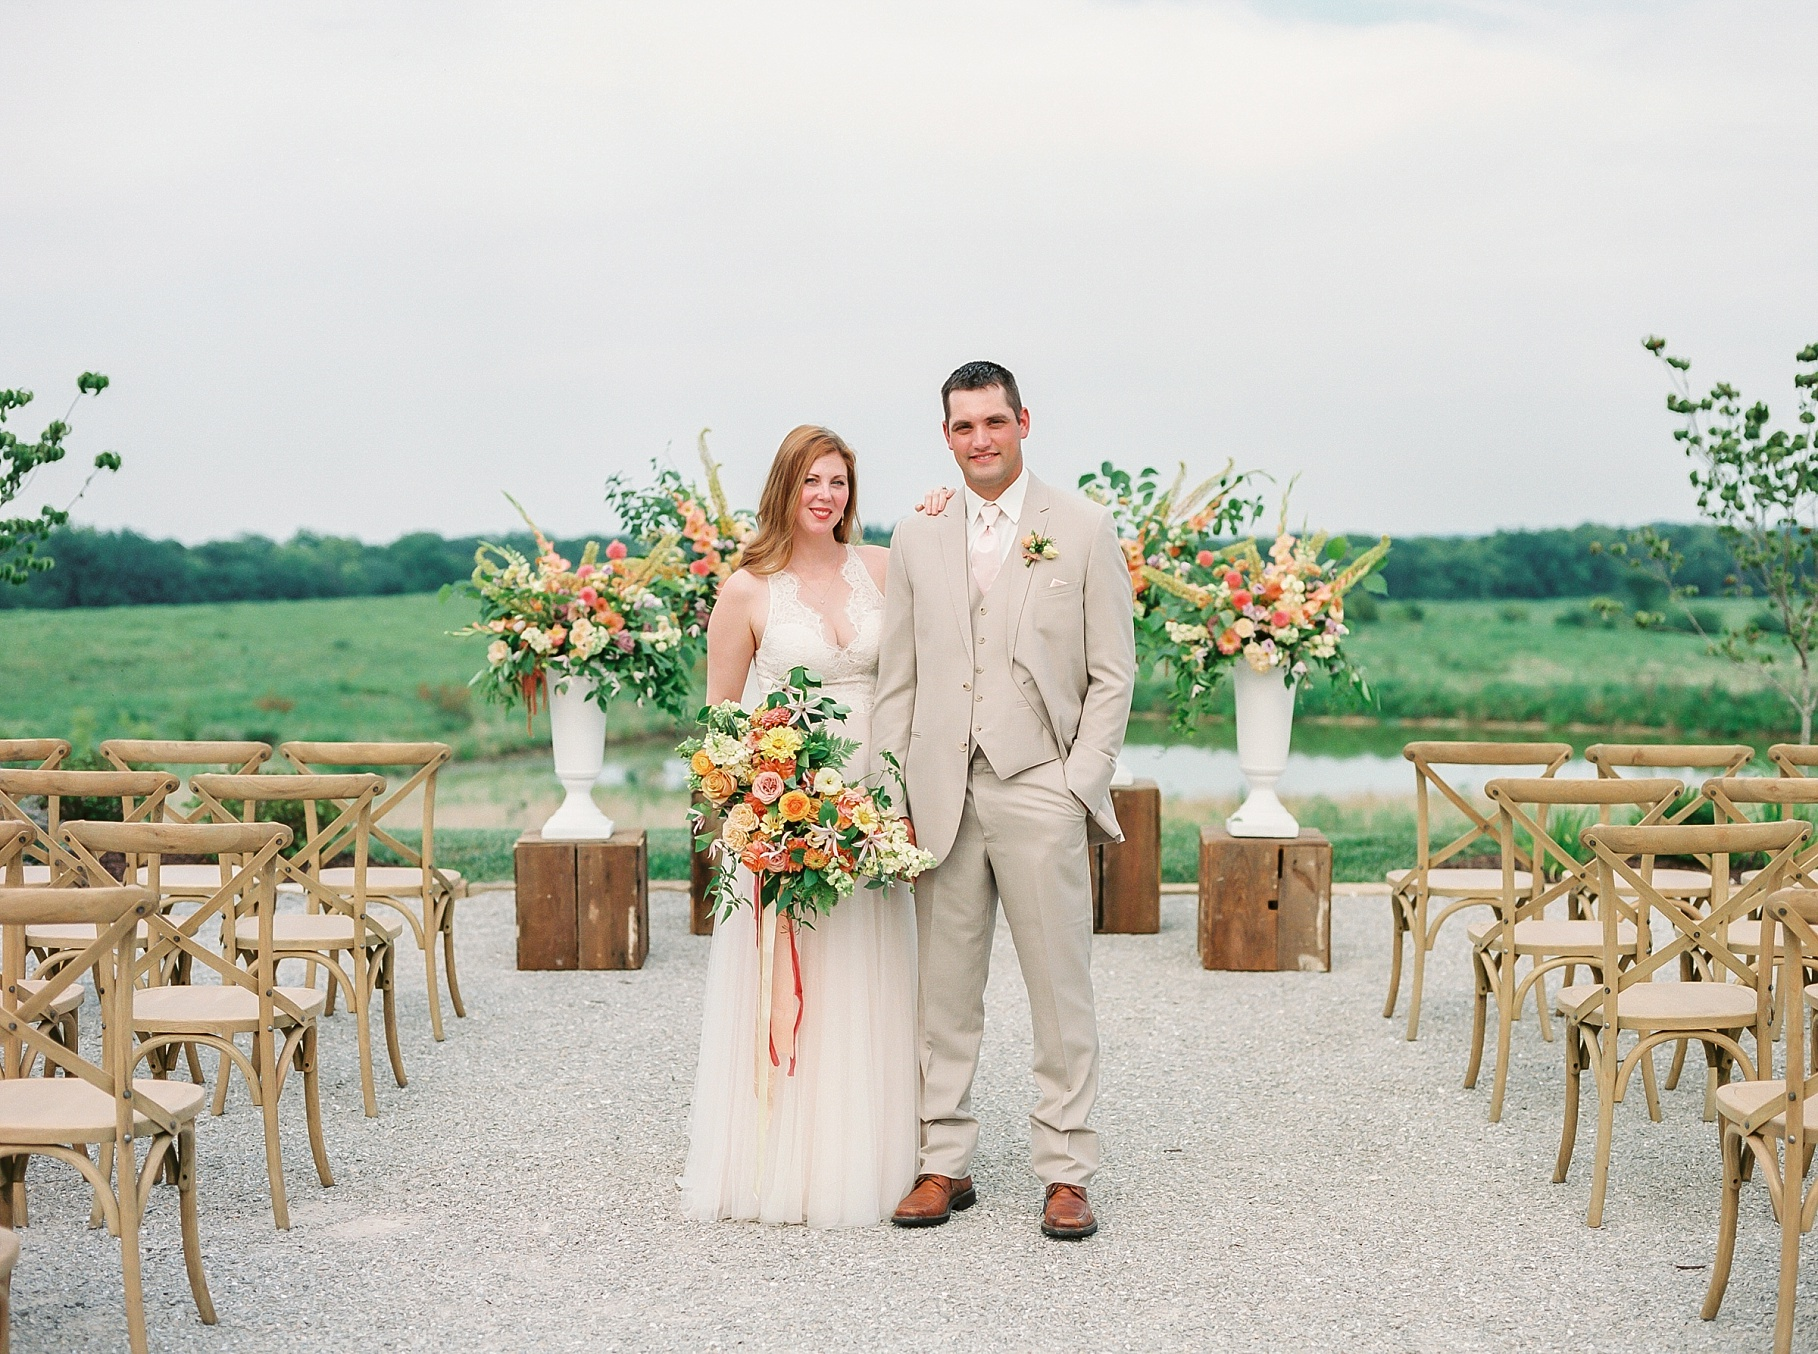 Late Summer Wedding With Pastel Toned Soiree at Blue Bell Farm by Kelsi Kliethermes Photography Best Columbia Missouri Wedding Photographer_0023.jpg